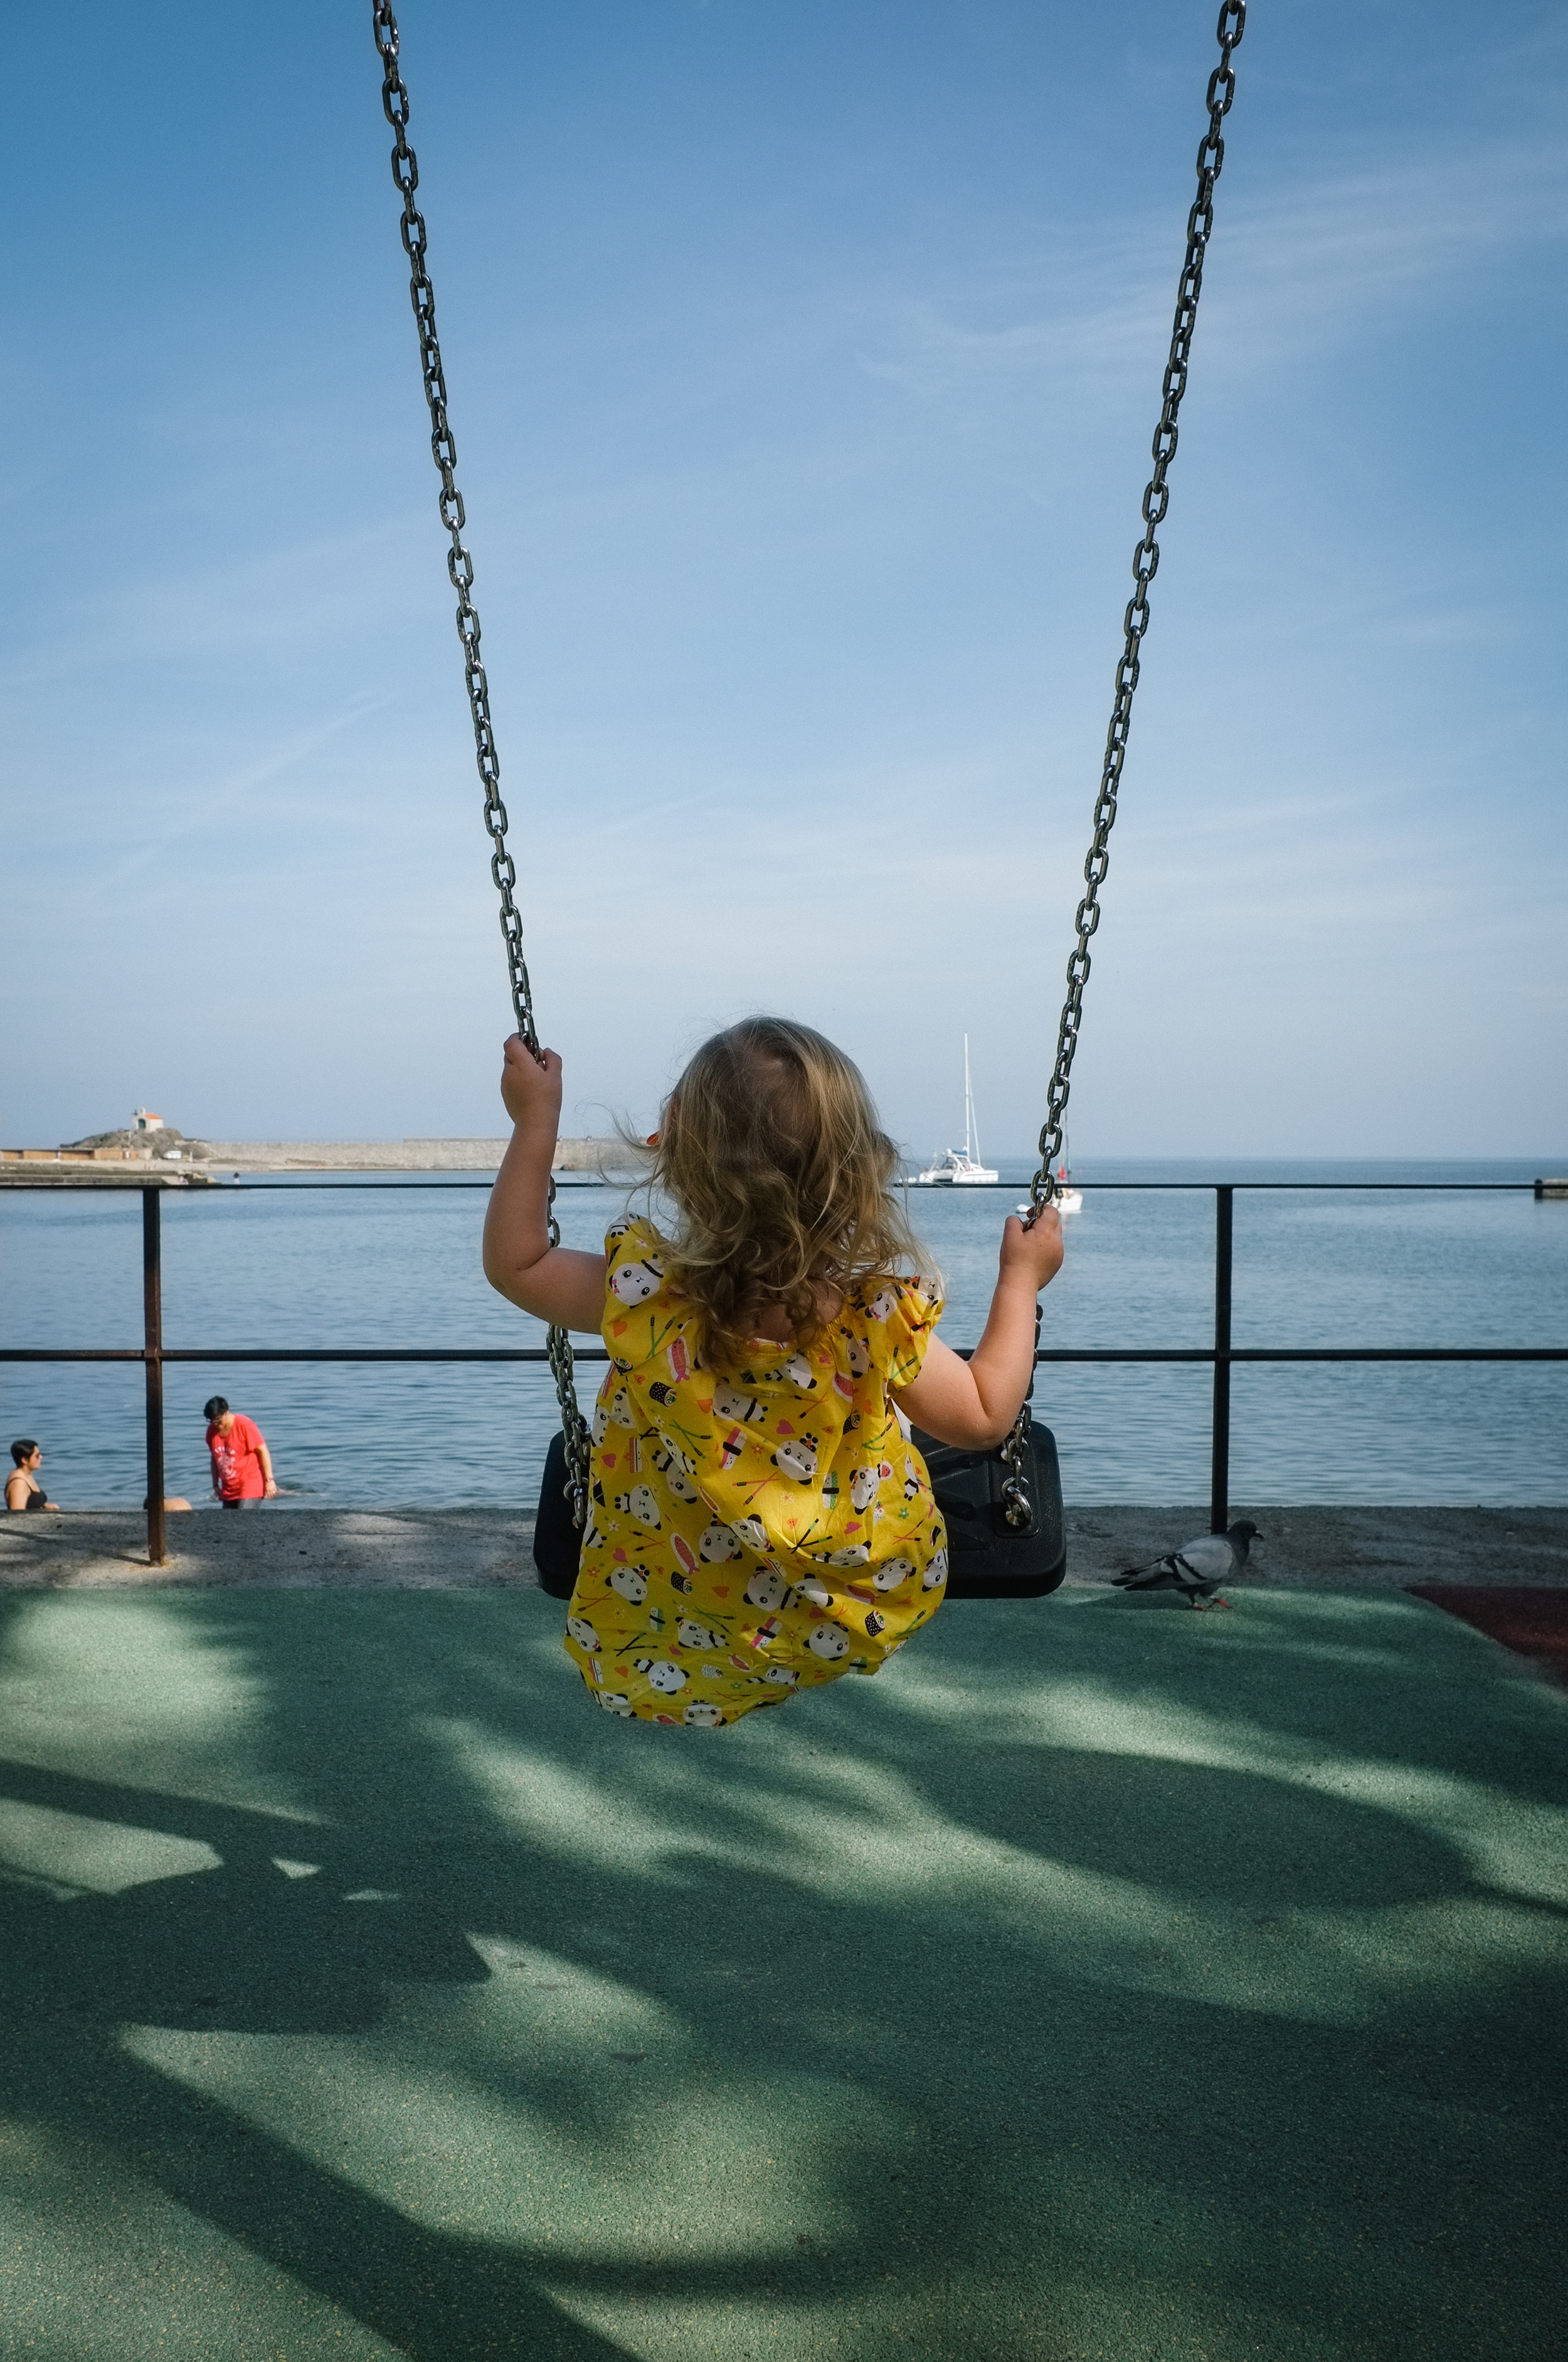 """Riding the """"big girl"""" swing for the first time. Collioure"""